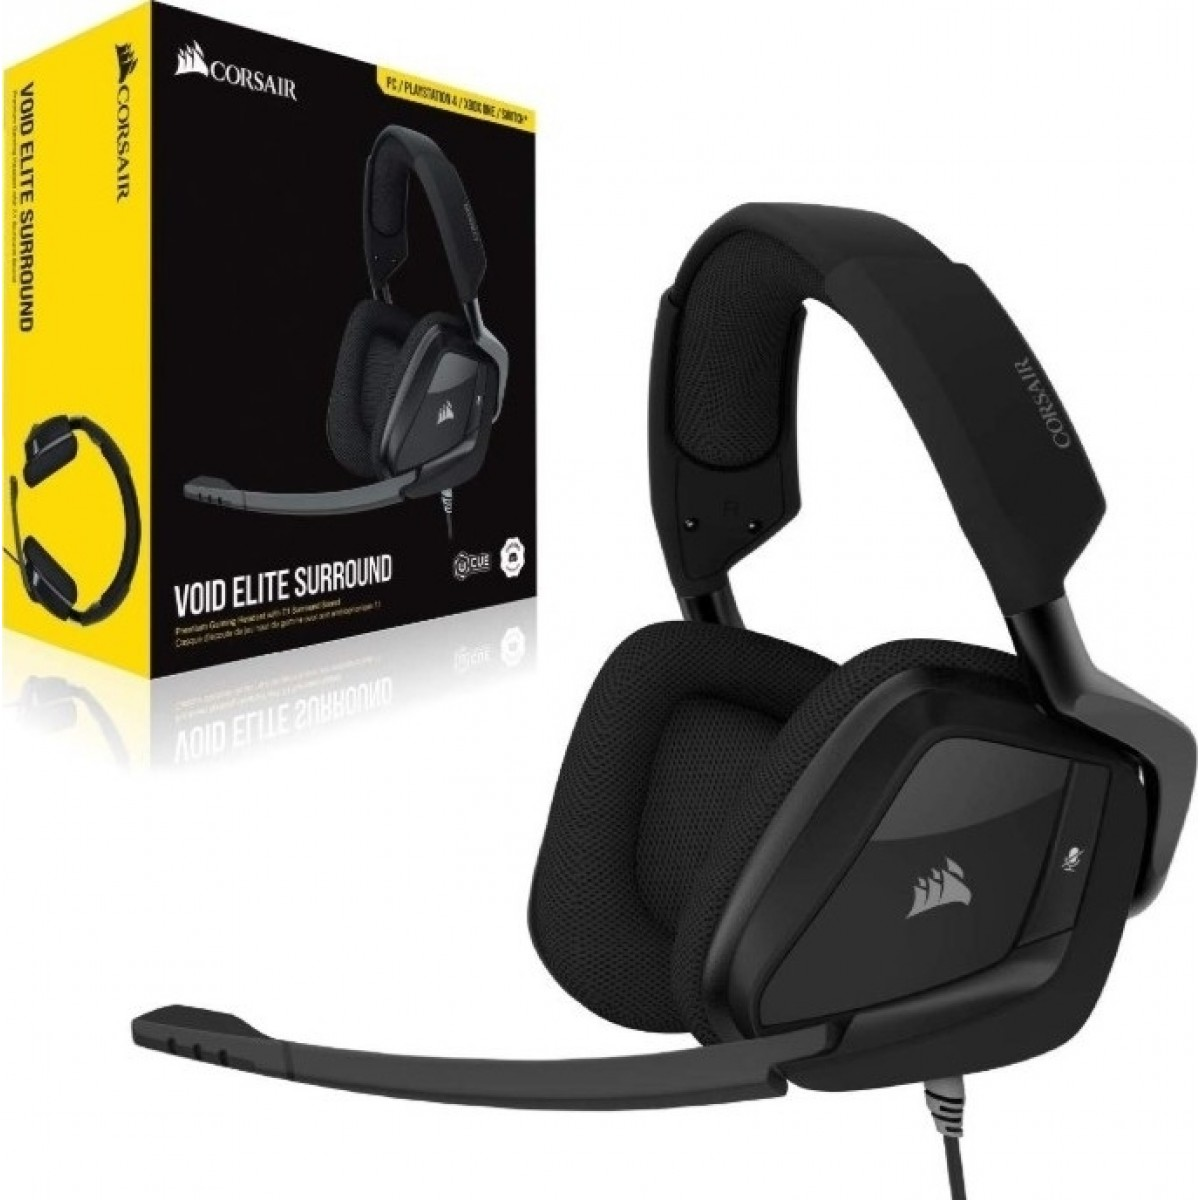 Headset Gamer Corsair Void Elite Surround, USB + 3.5mm, PC, PlayStation 4, Dispositivos Móveis, Switch, Xbox One, Carbon, CA-9011205-NA